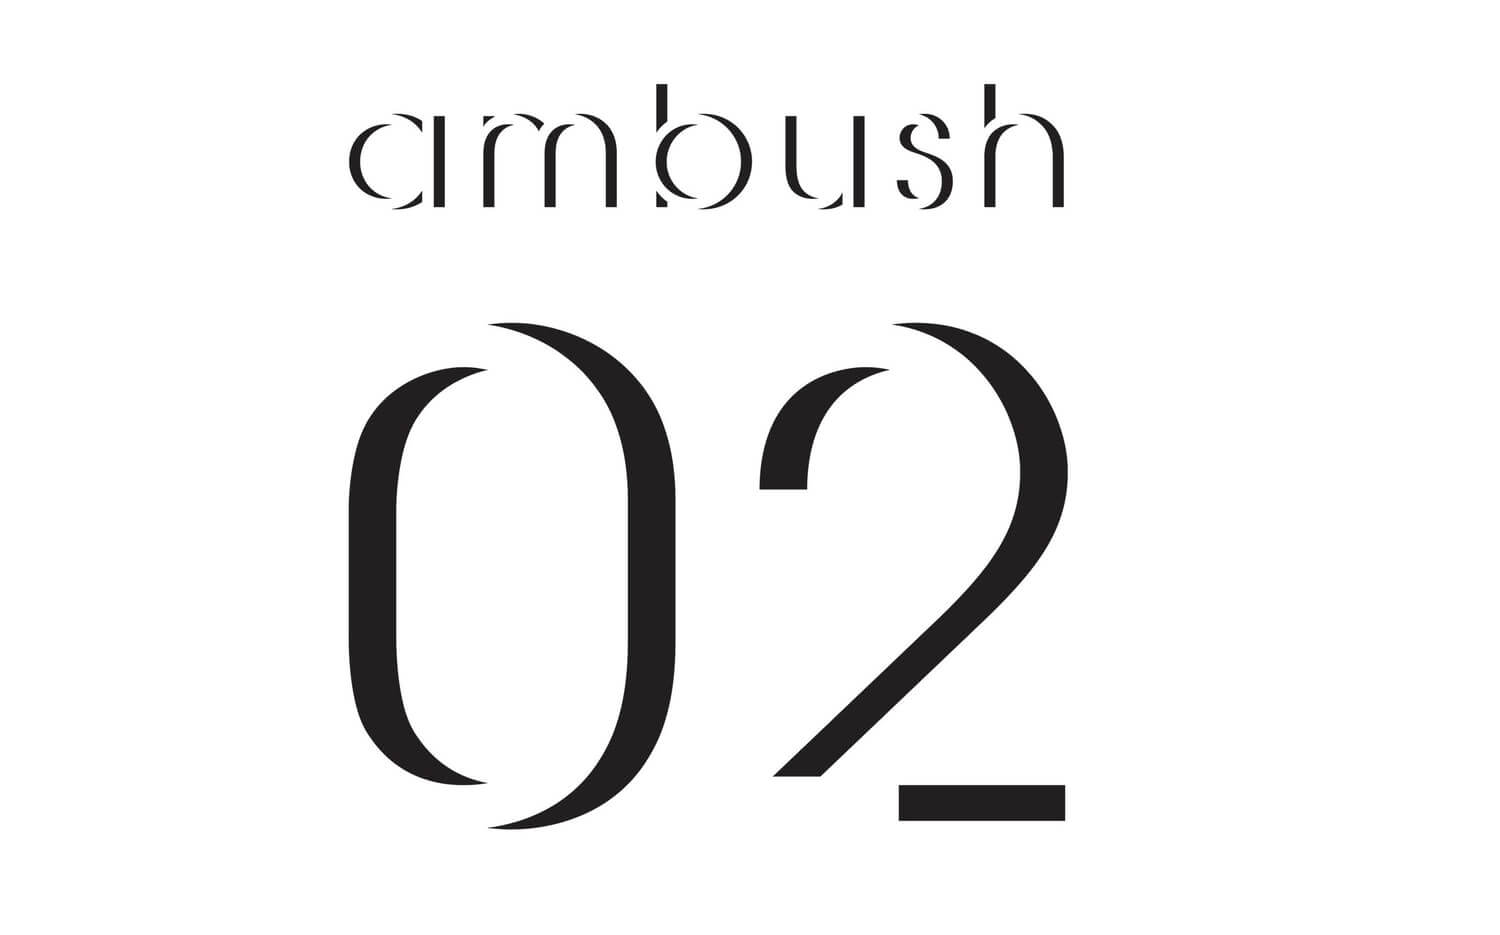 Ambush logo by Pentagram